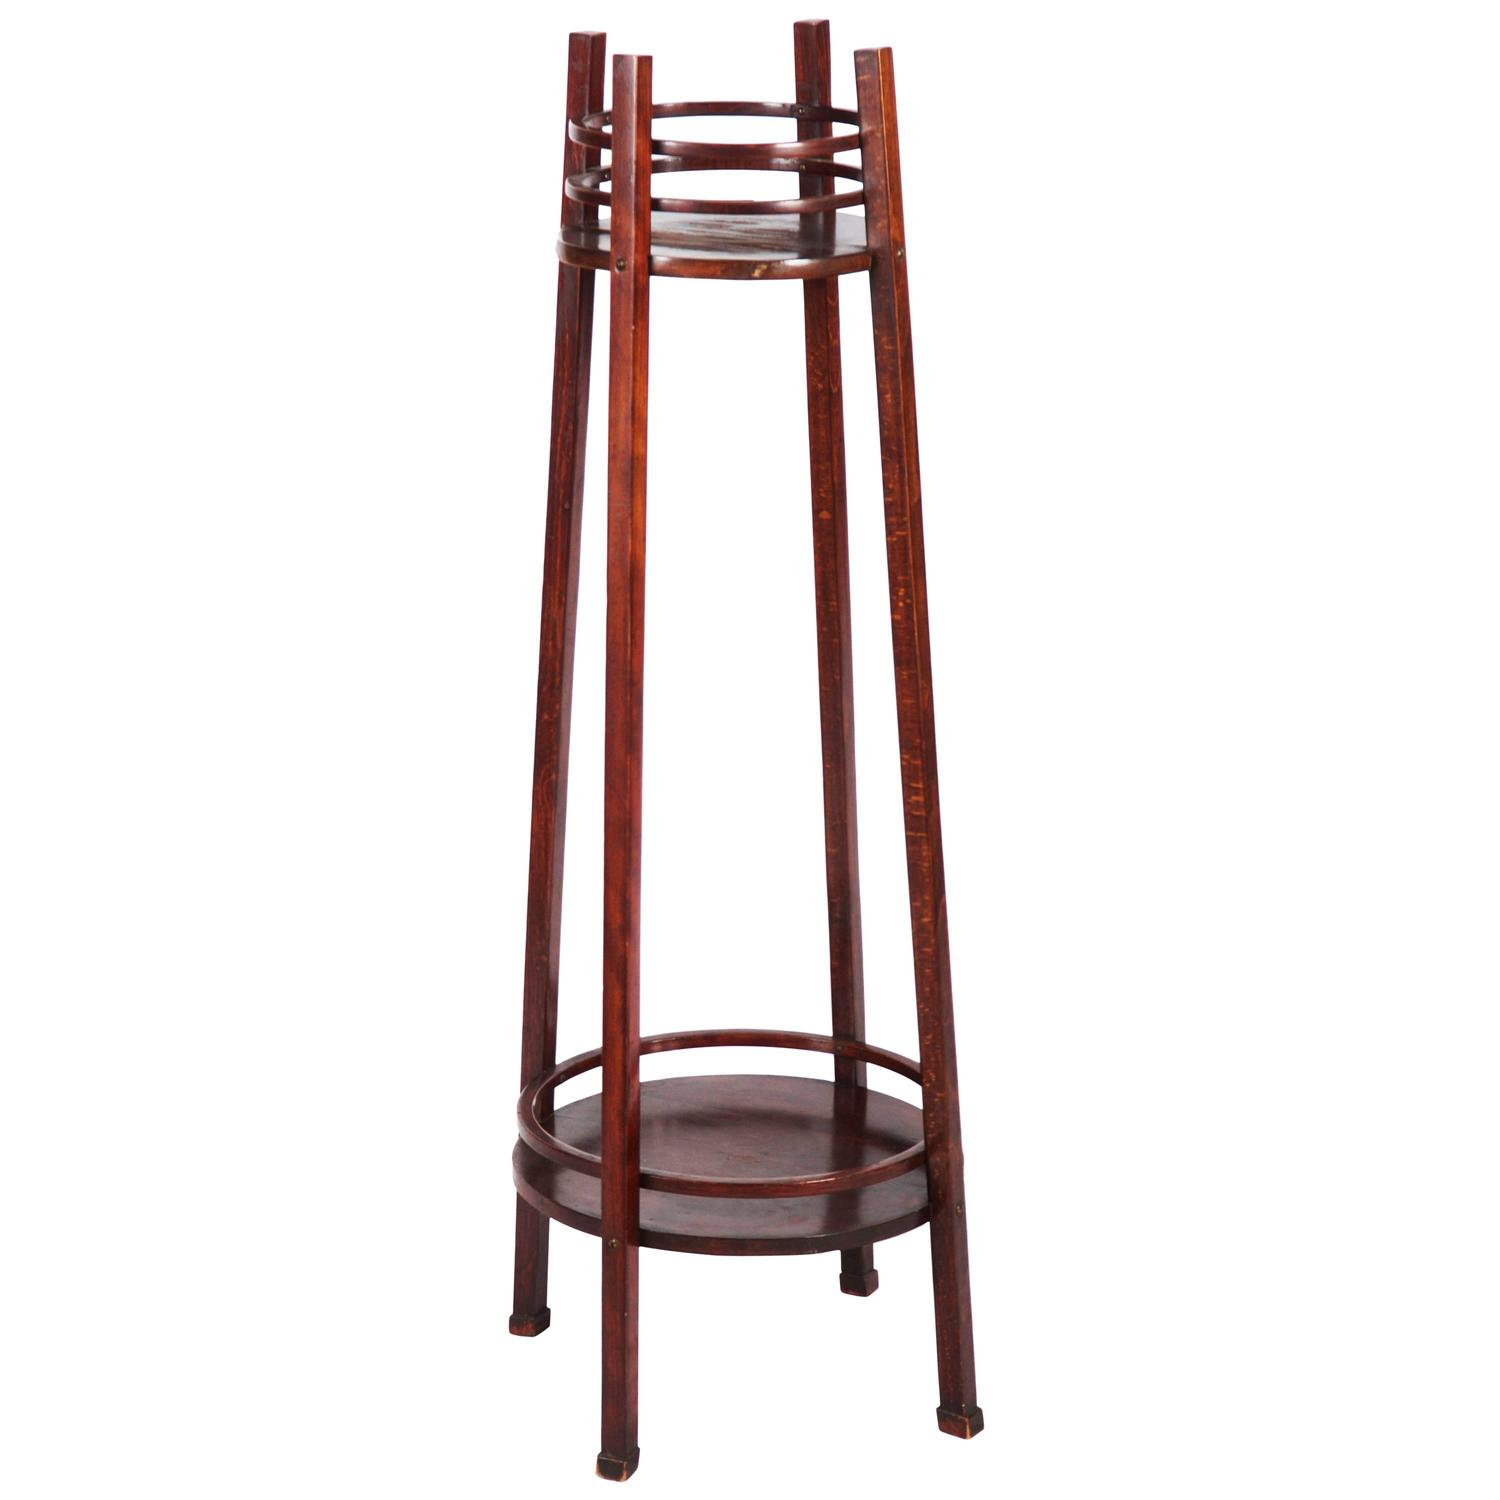 Rare Thonet Plant Stands Or Pedestal For Sale At 1stdibs